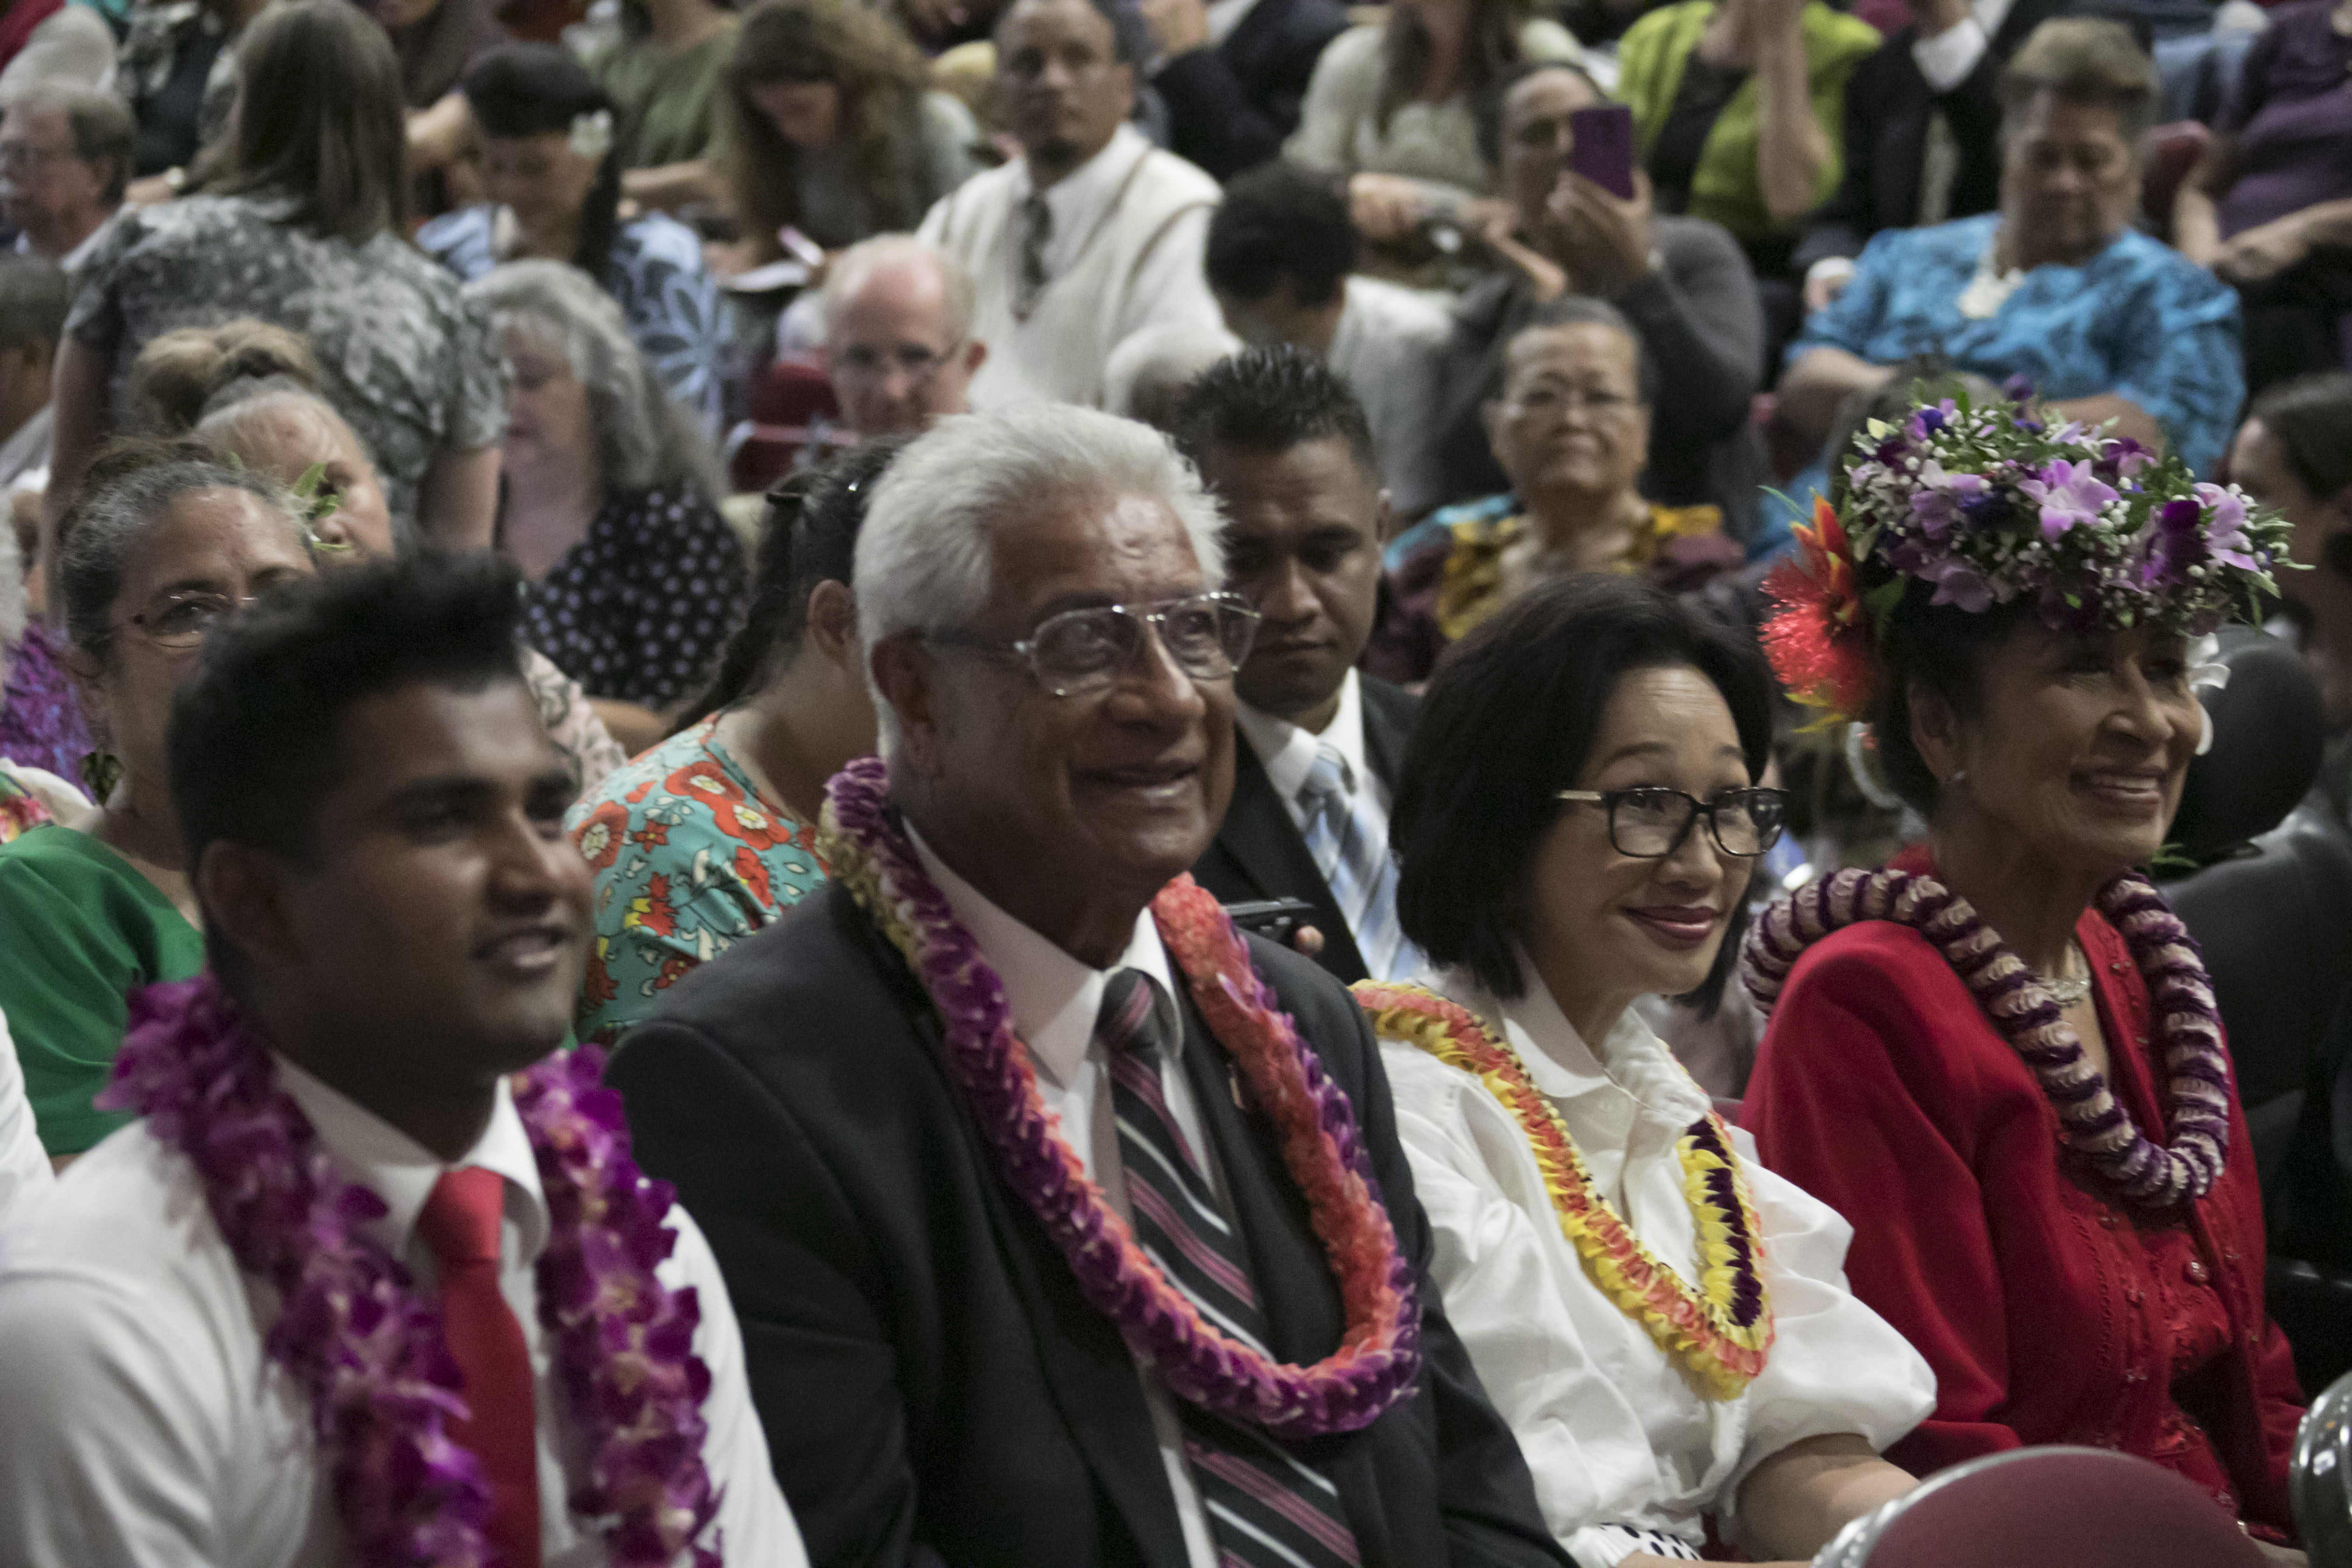 Church members listen during a special devotional in Laie, Hawaii, on April 22.